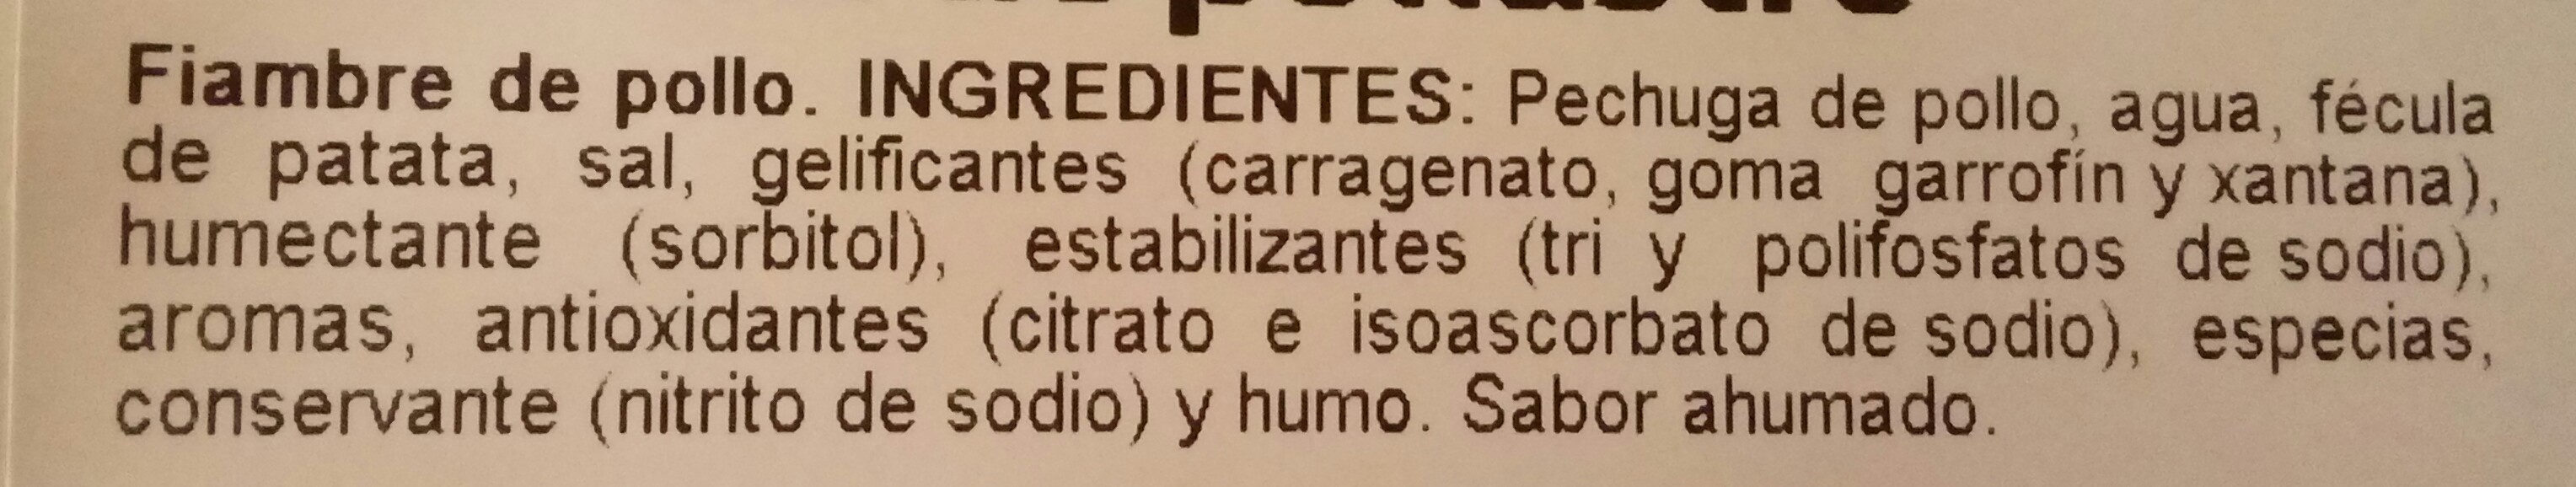 Finísimo de pollo - Ingredientes